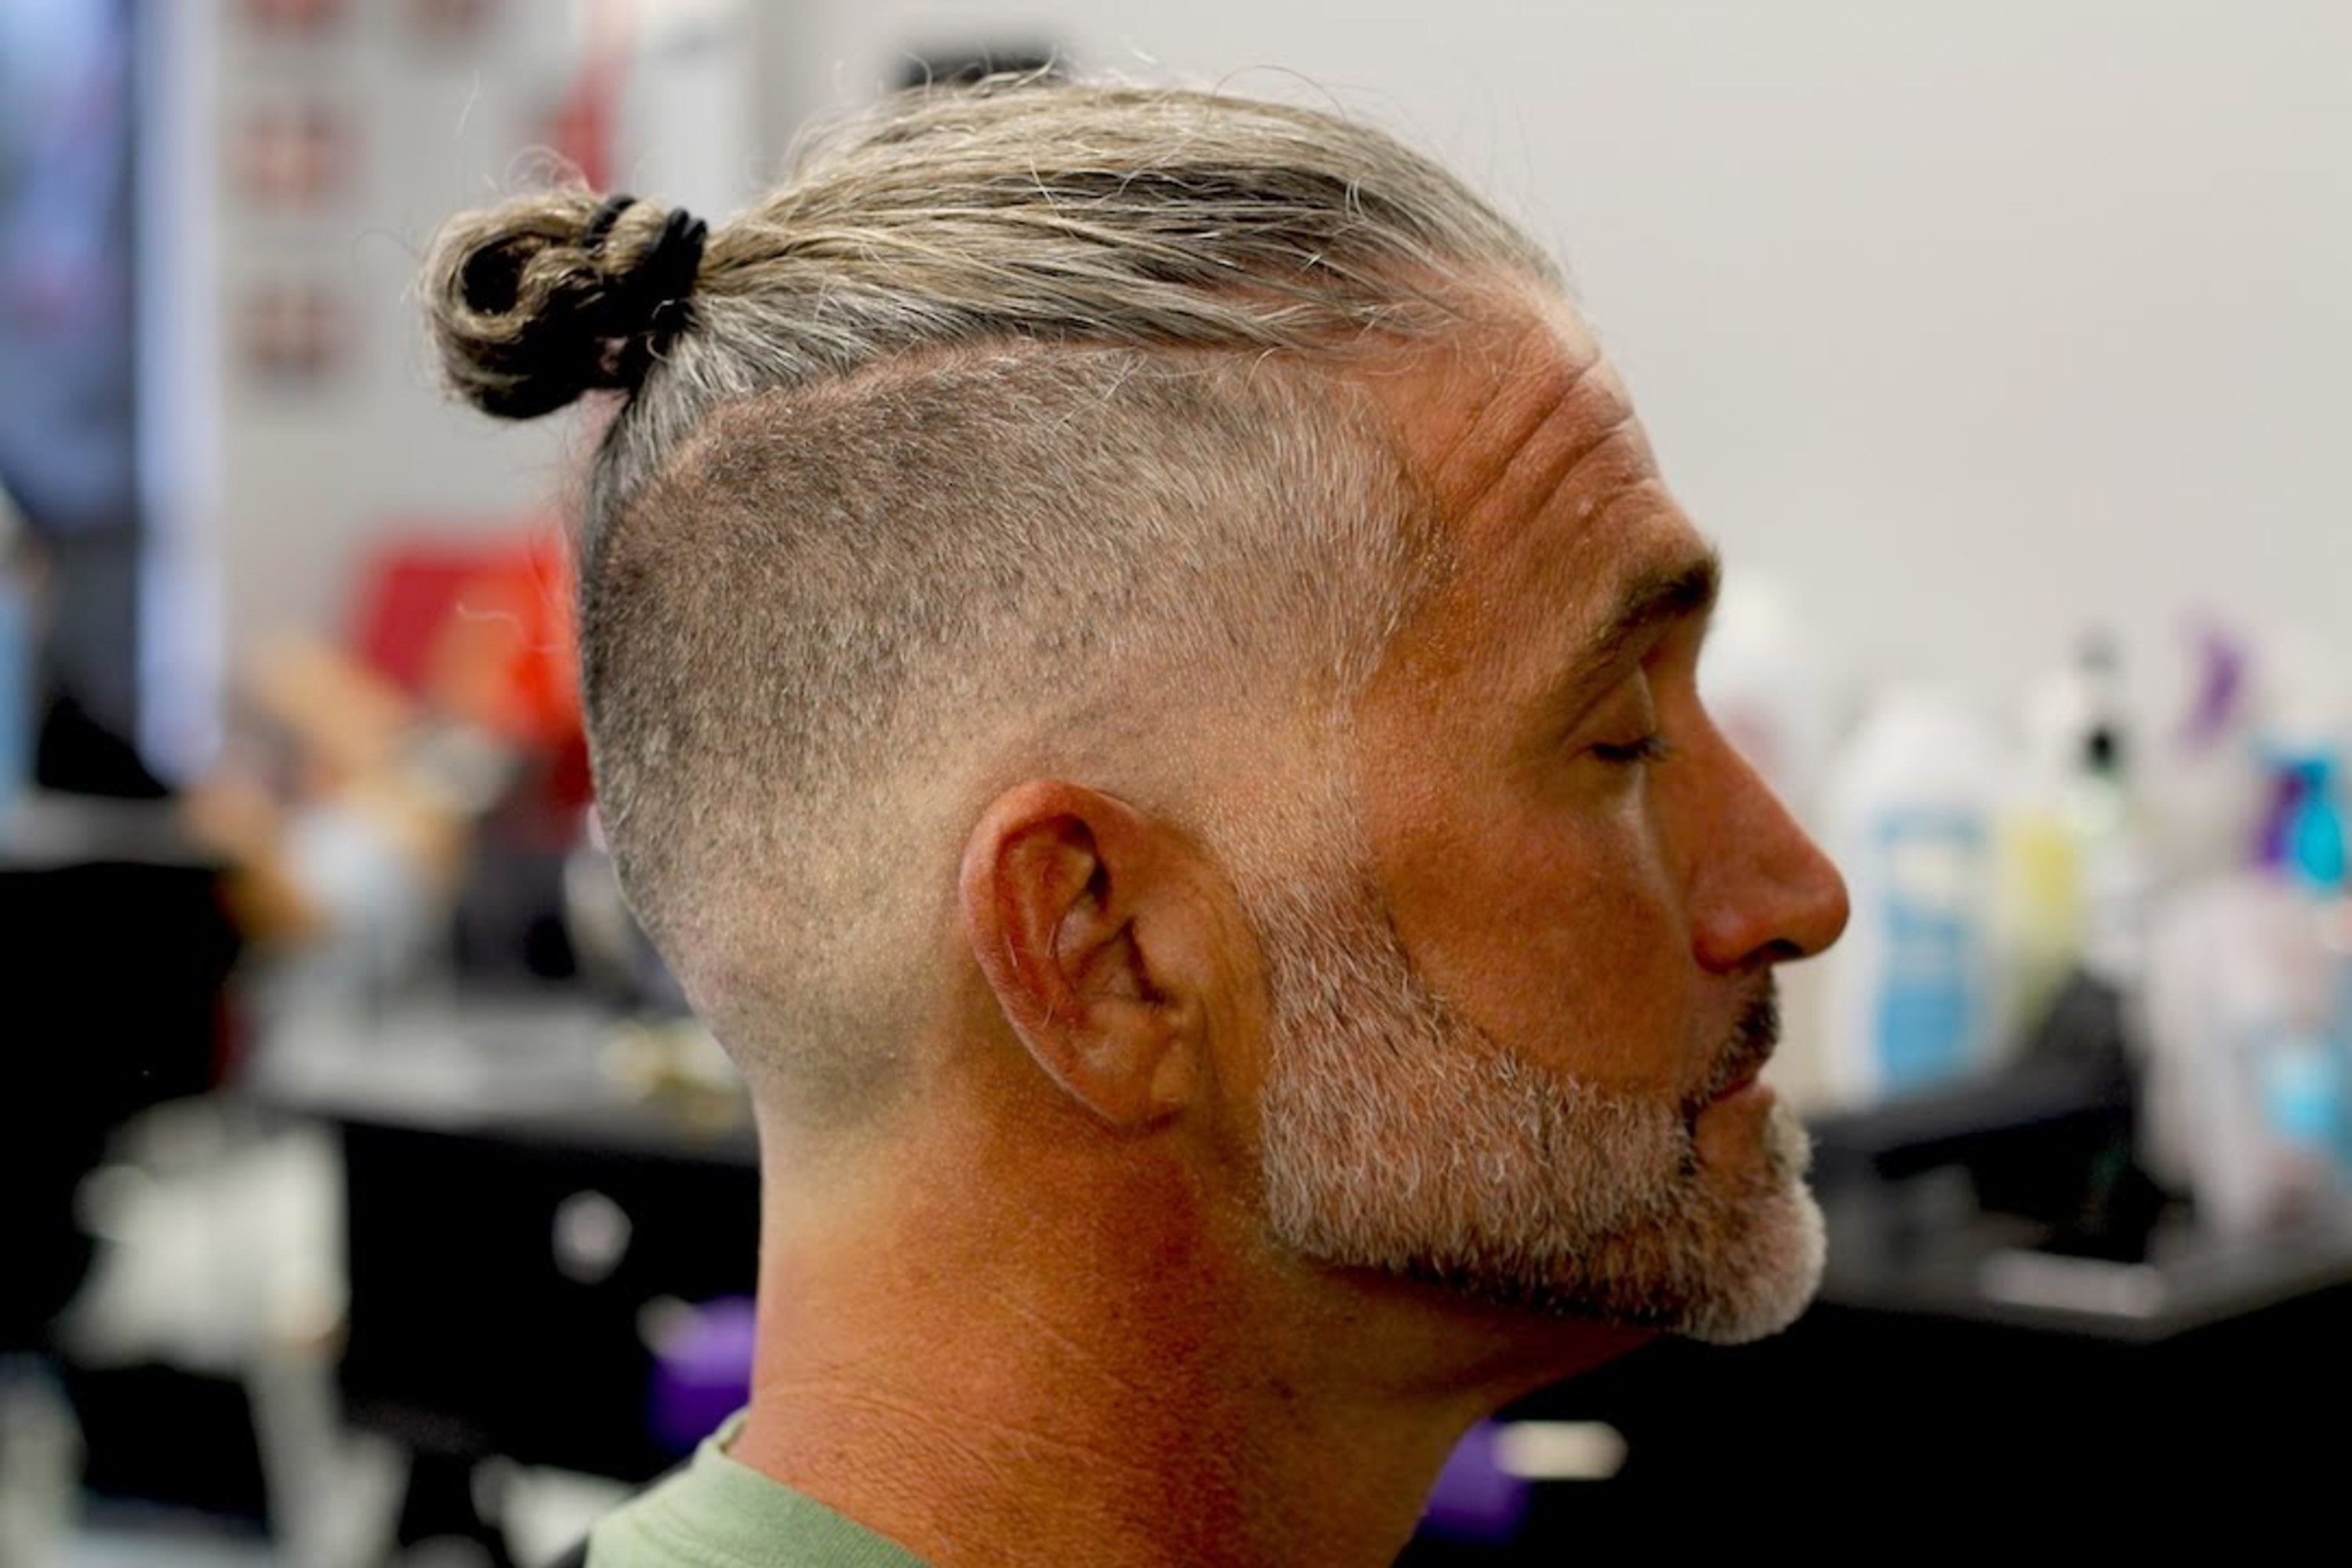 A skin faded haircut with a bun for stylish men.